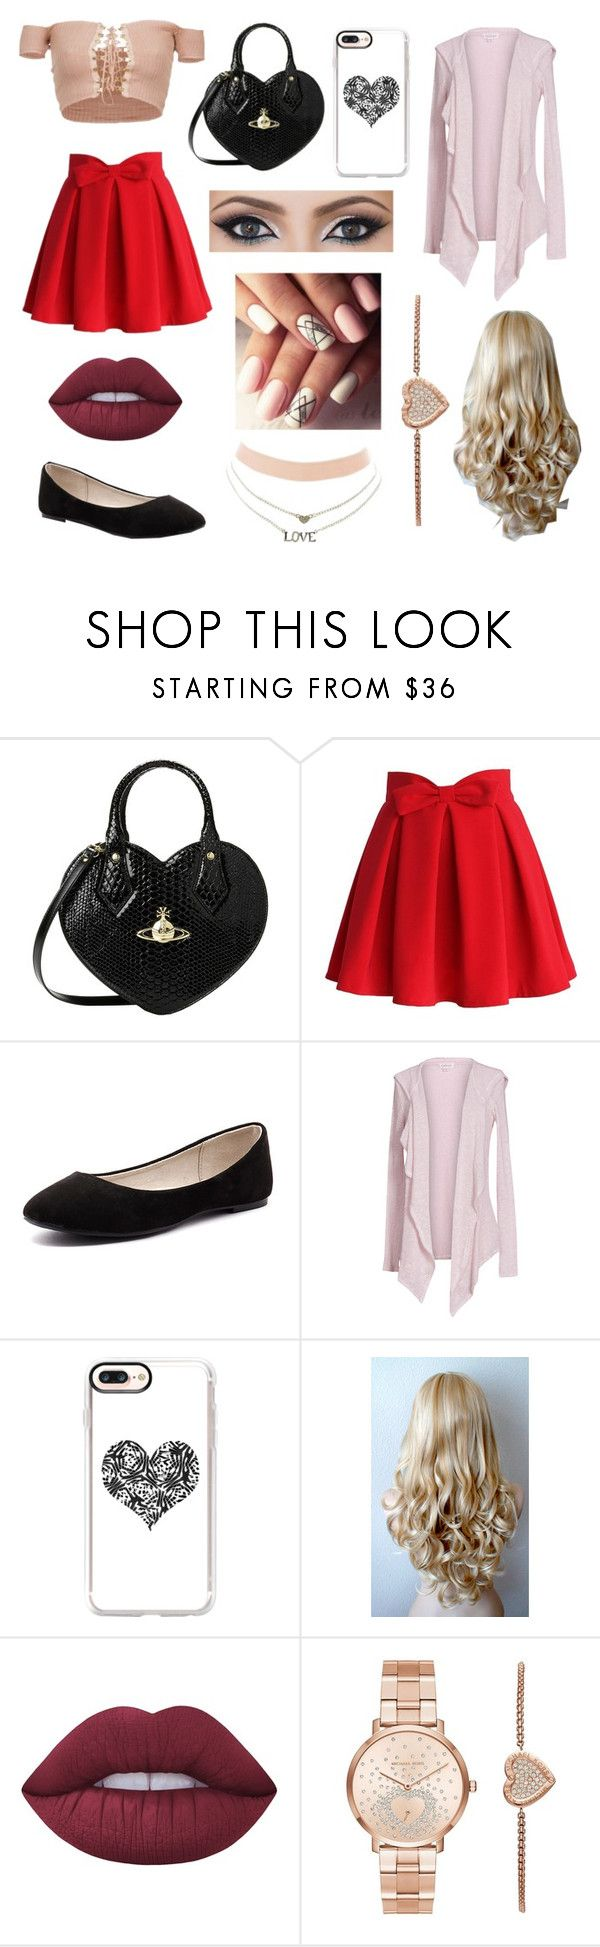 """""""Valentines Day Outfit"""" by fandoms-and-good-music ❤ liked on Polyvore featuring Vivienne Westwood, Chicwish, Verali, Velvet by Graham & Spencer, Casetify, Lime Crime, Michael Kors and Charlotte Russe"""